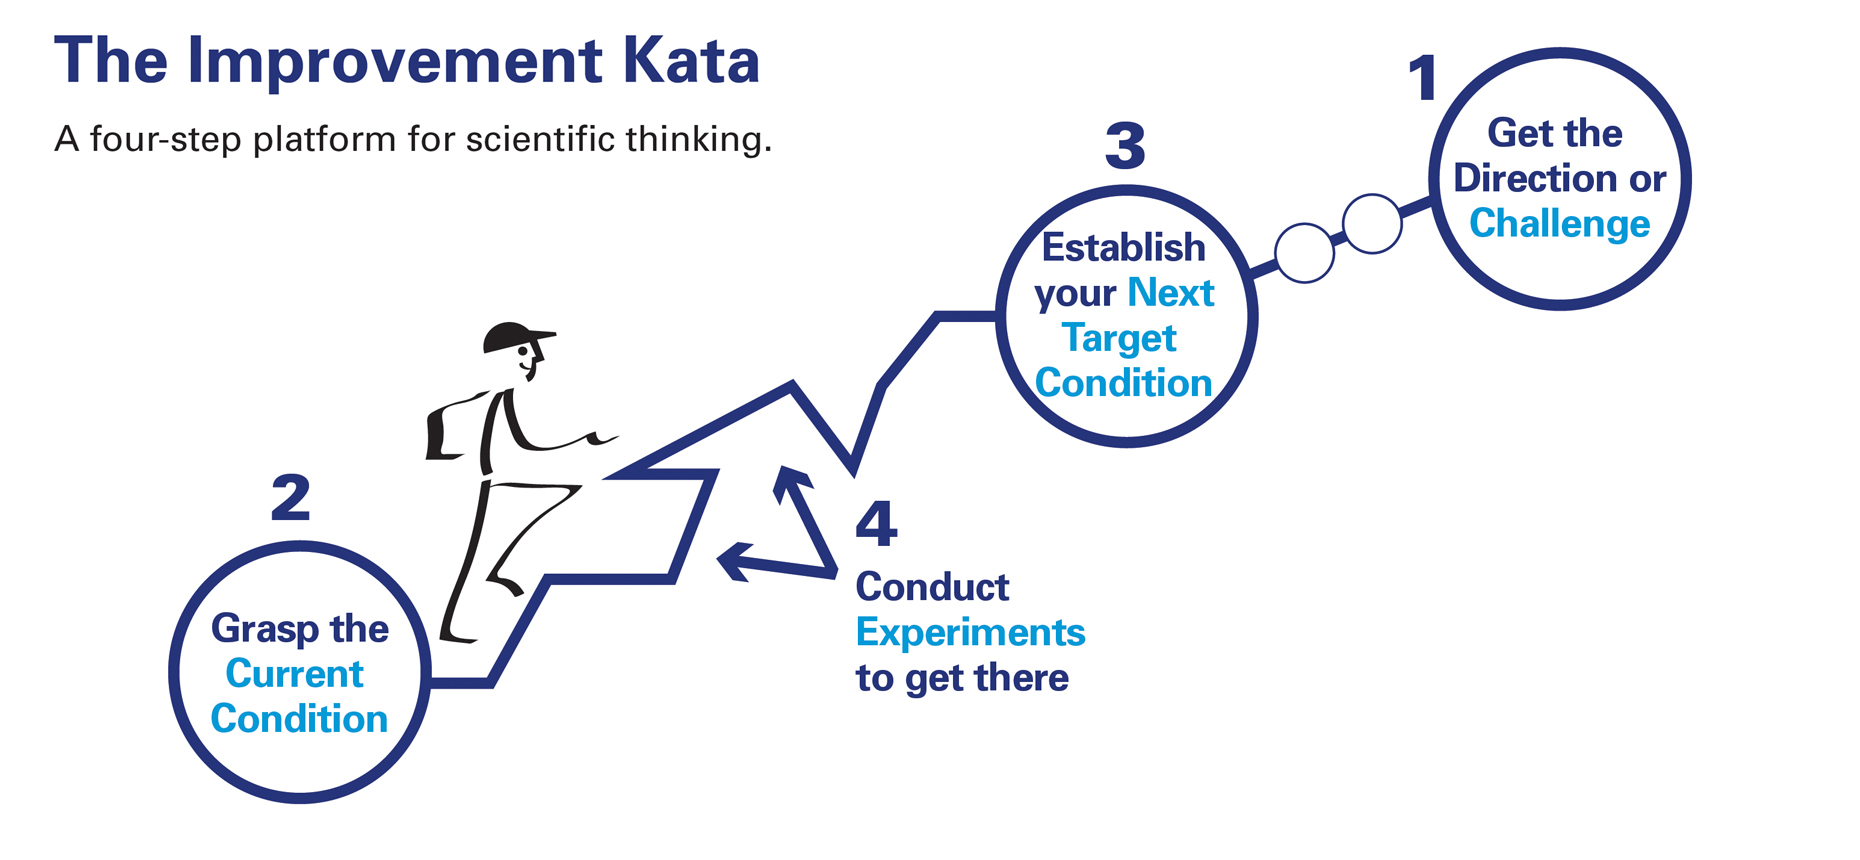 What is kata?